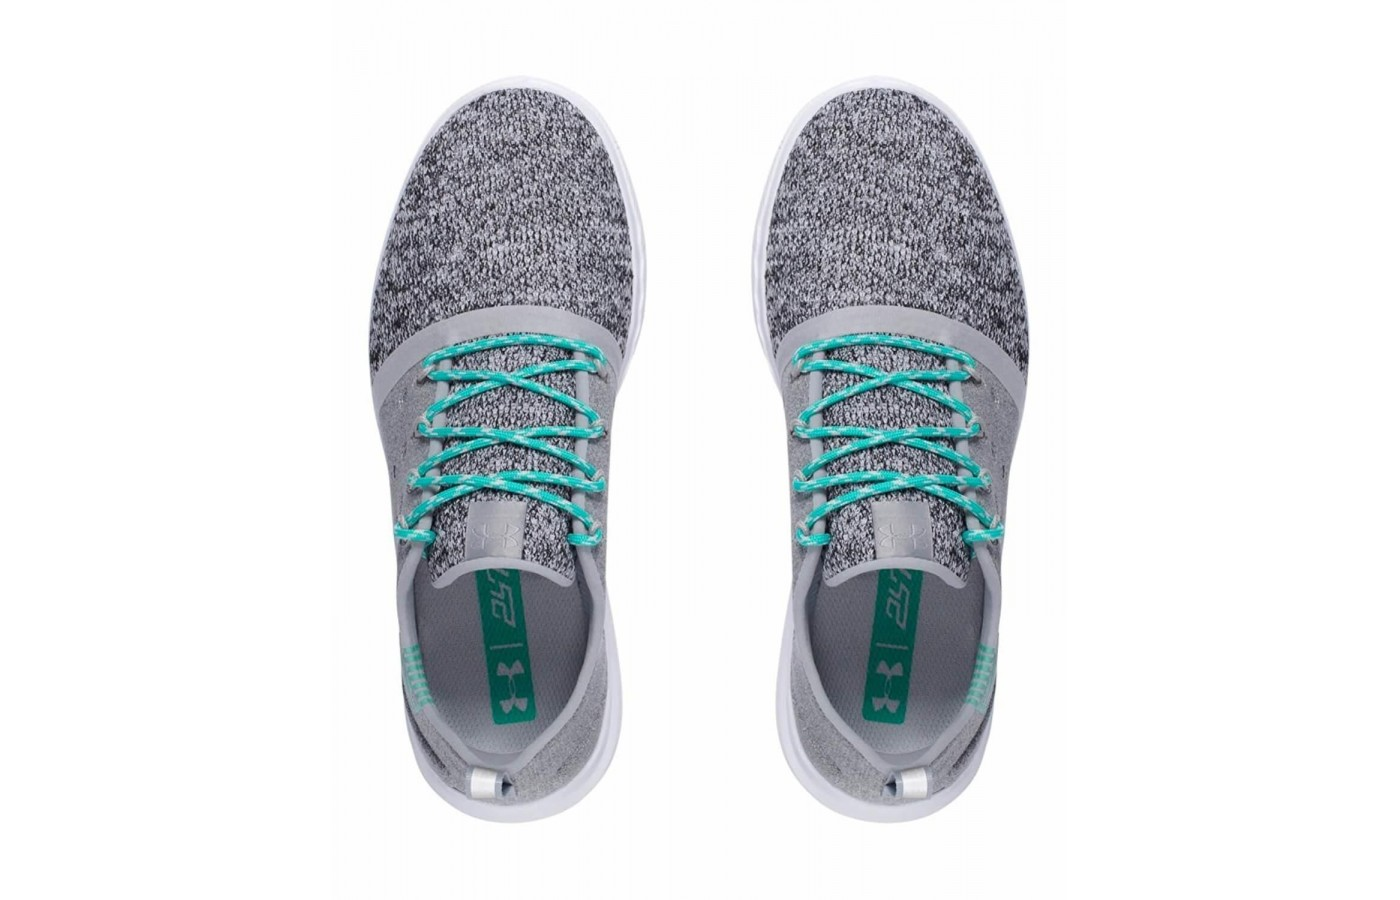 The Under Armour Charged 247 Low features a mesh forefoot construction